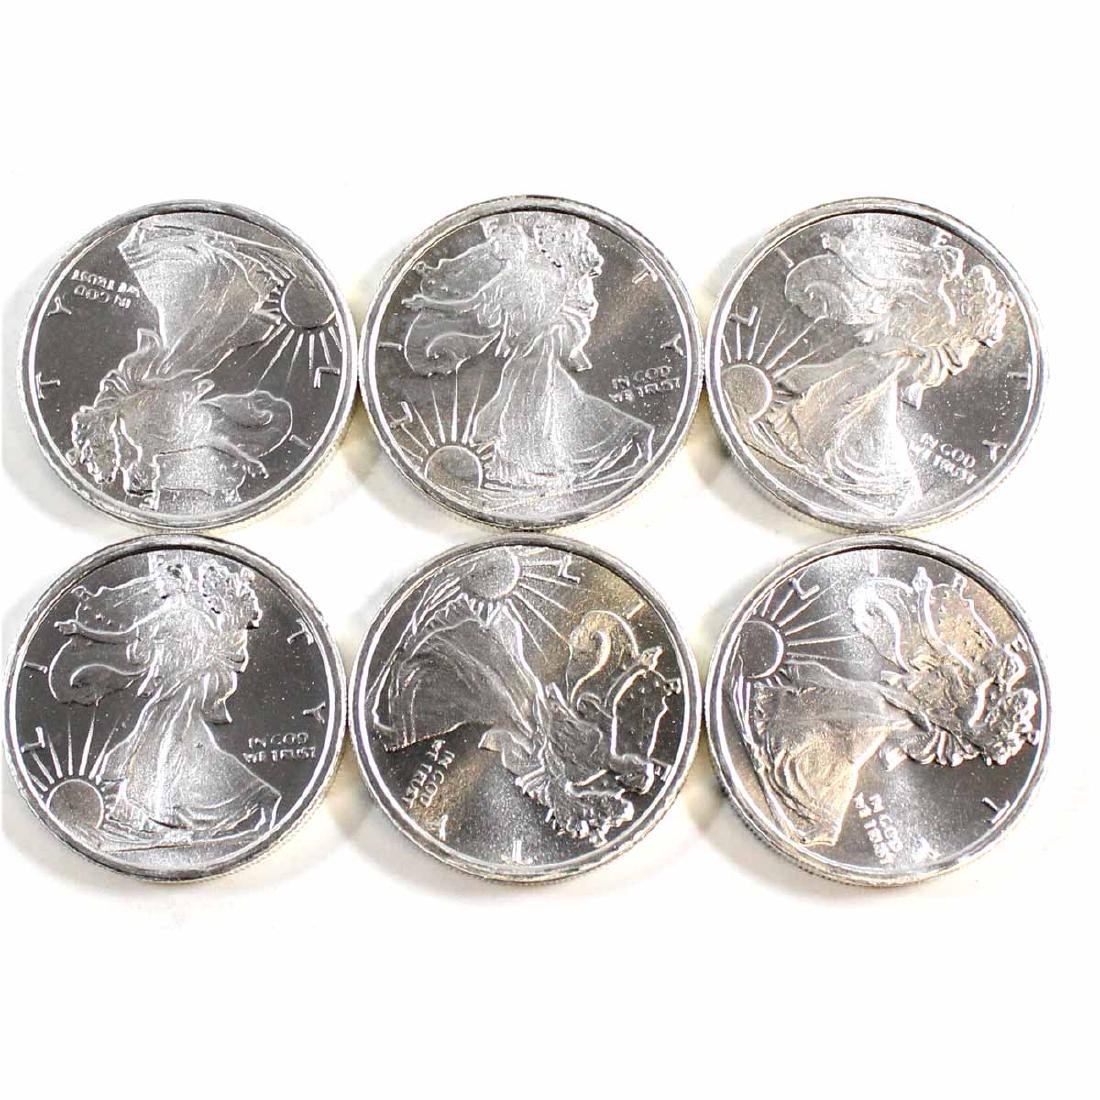 Lot of United States 1/4oz Fine Silver Walking Liberty